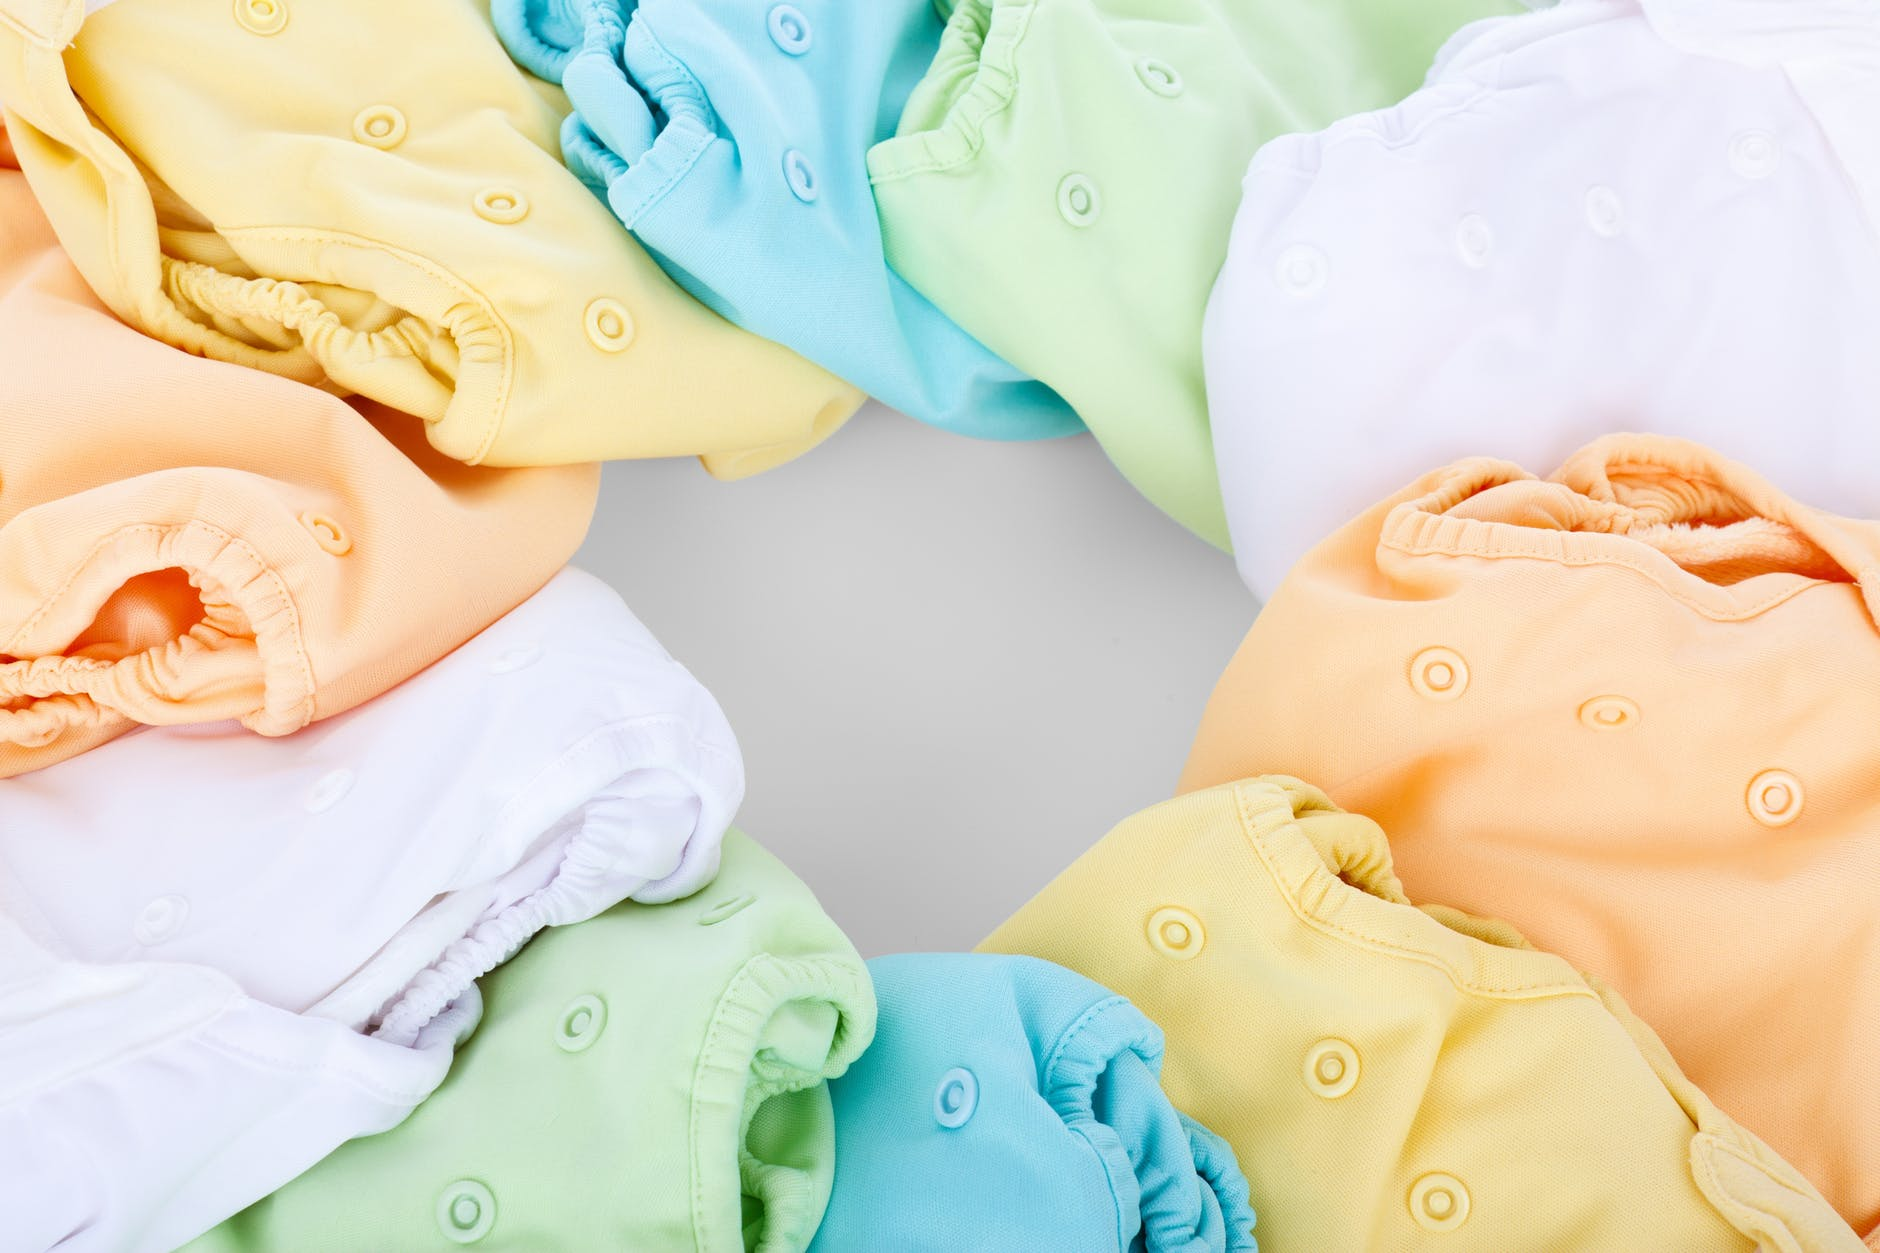 baby-cloth-clothing-color-41165.jpeg